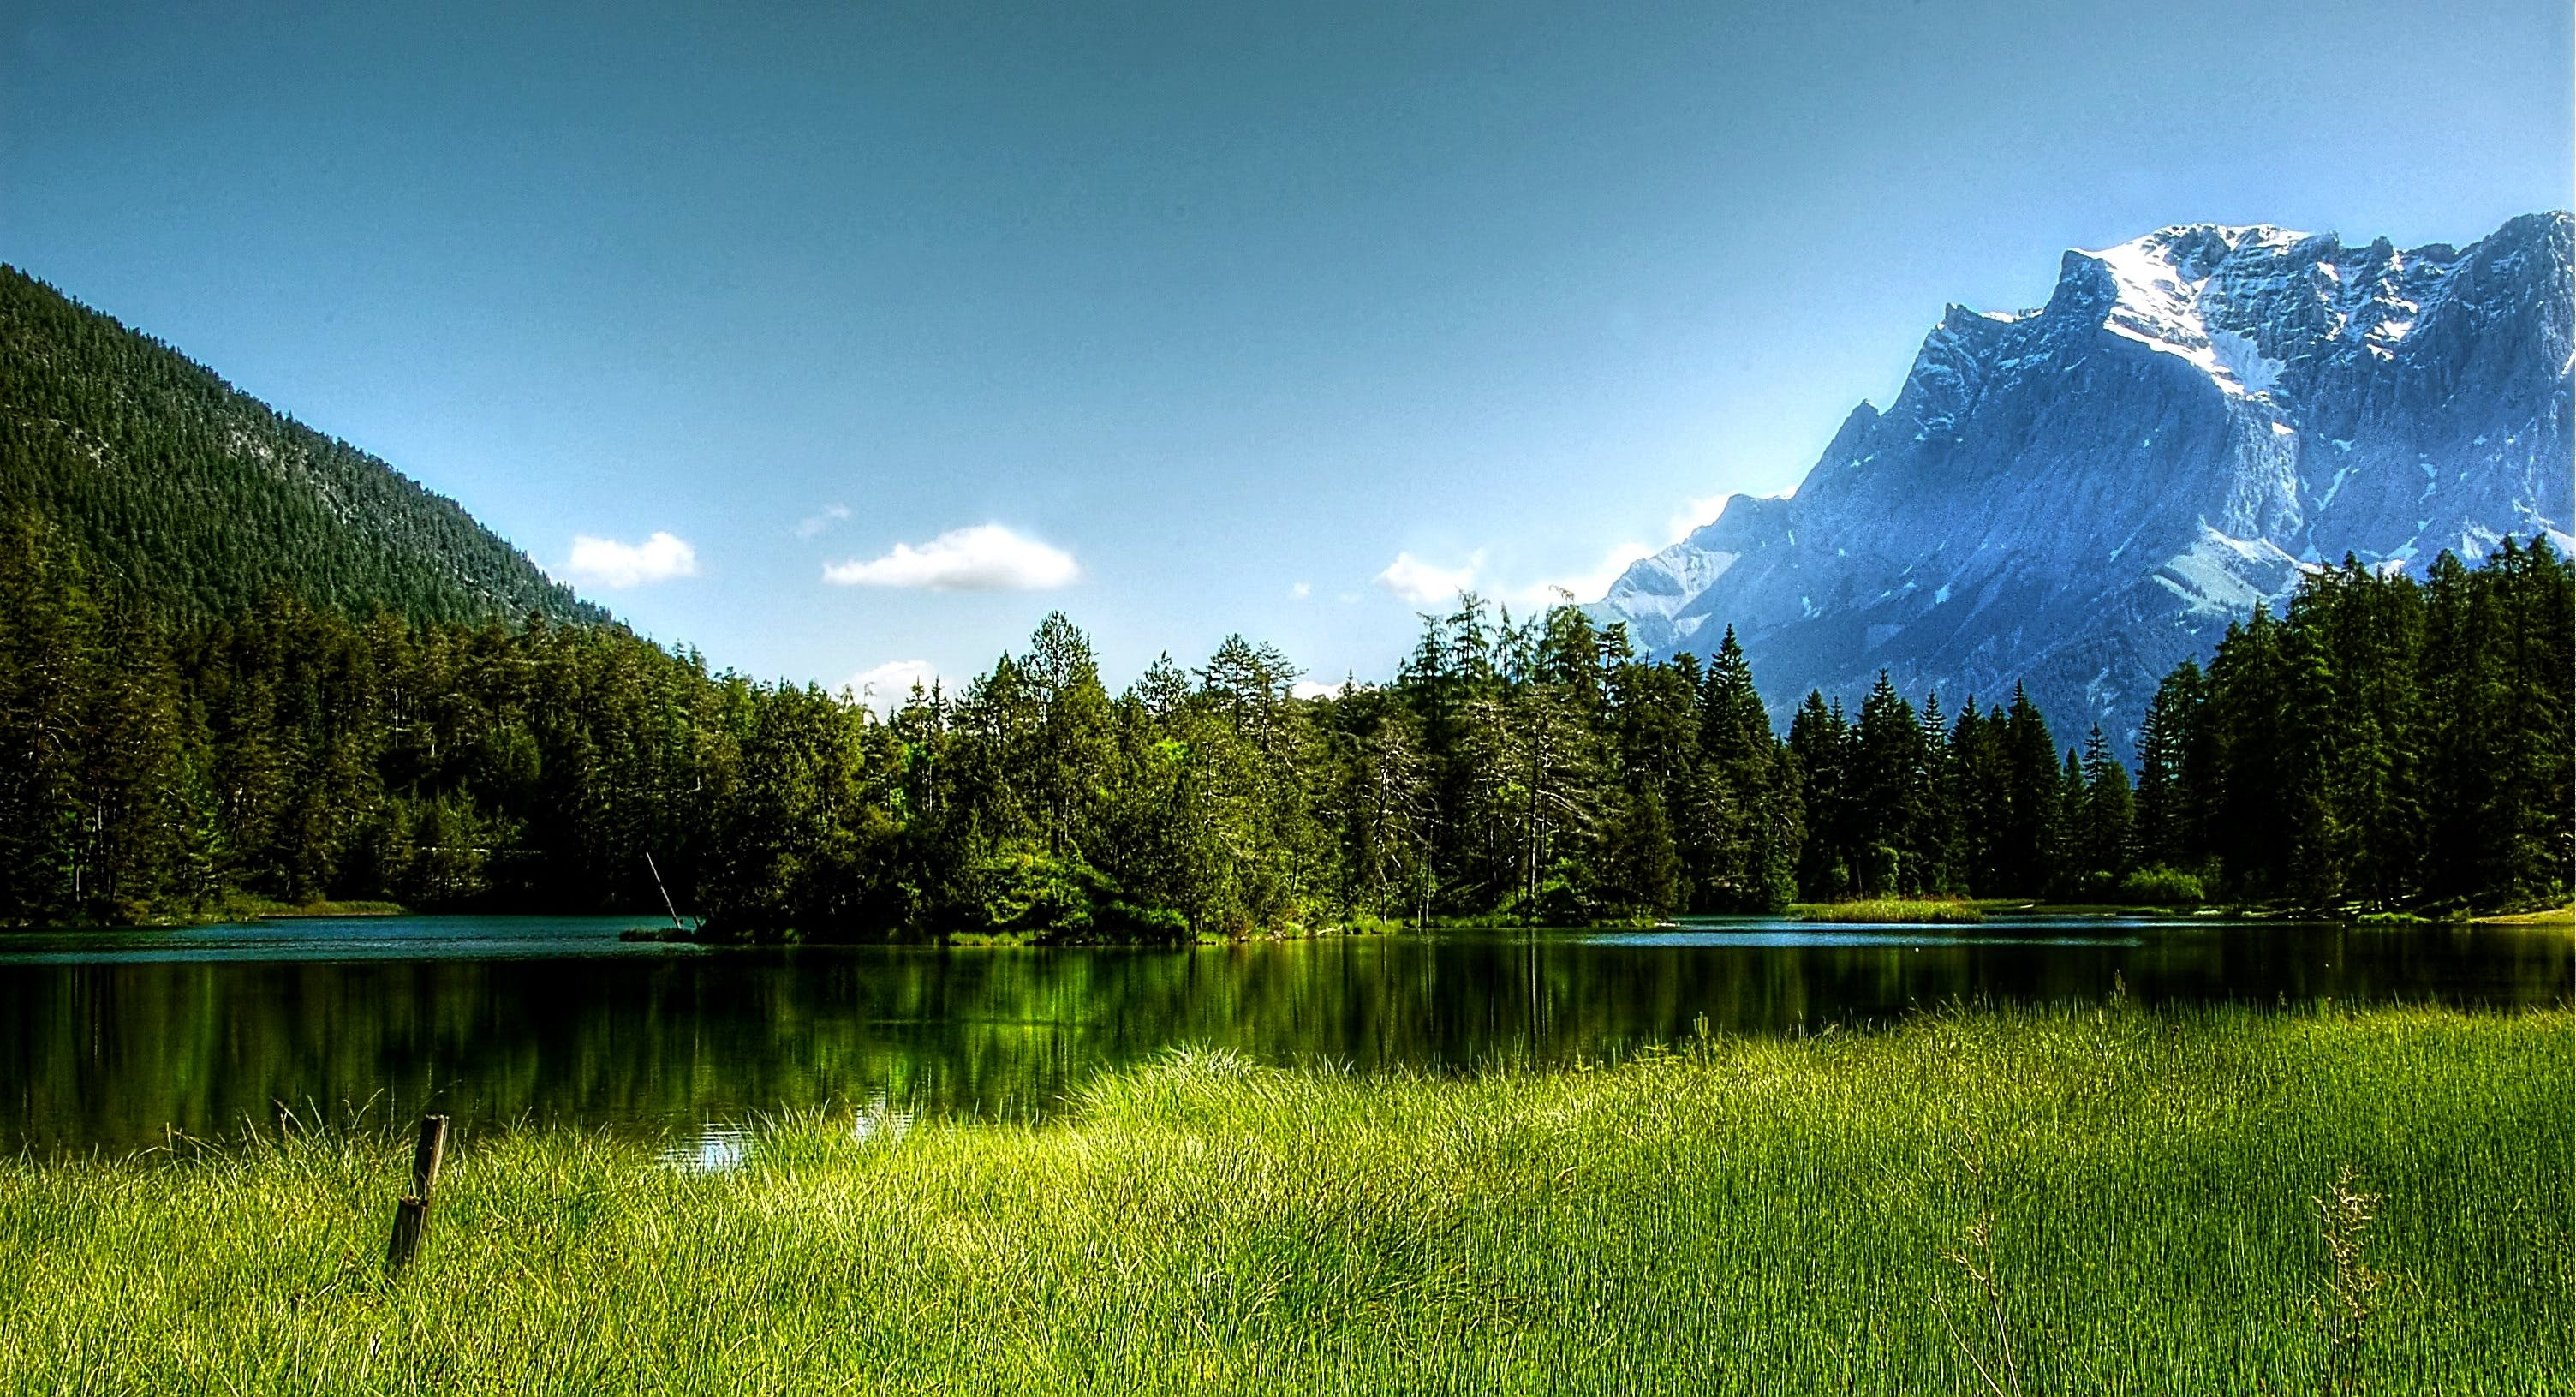 Lake Surrounded by Pine Trees Near Alps Mountains